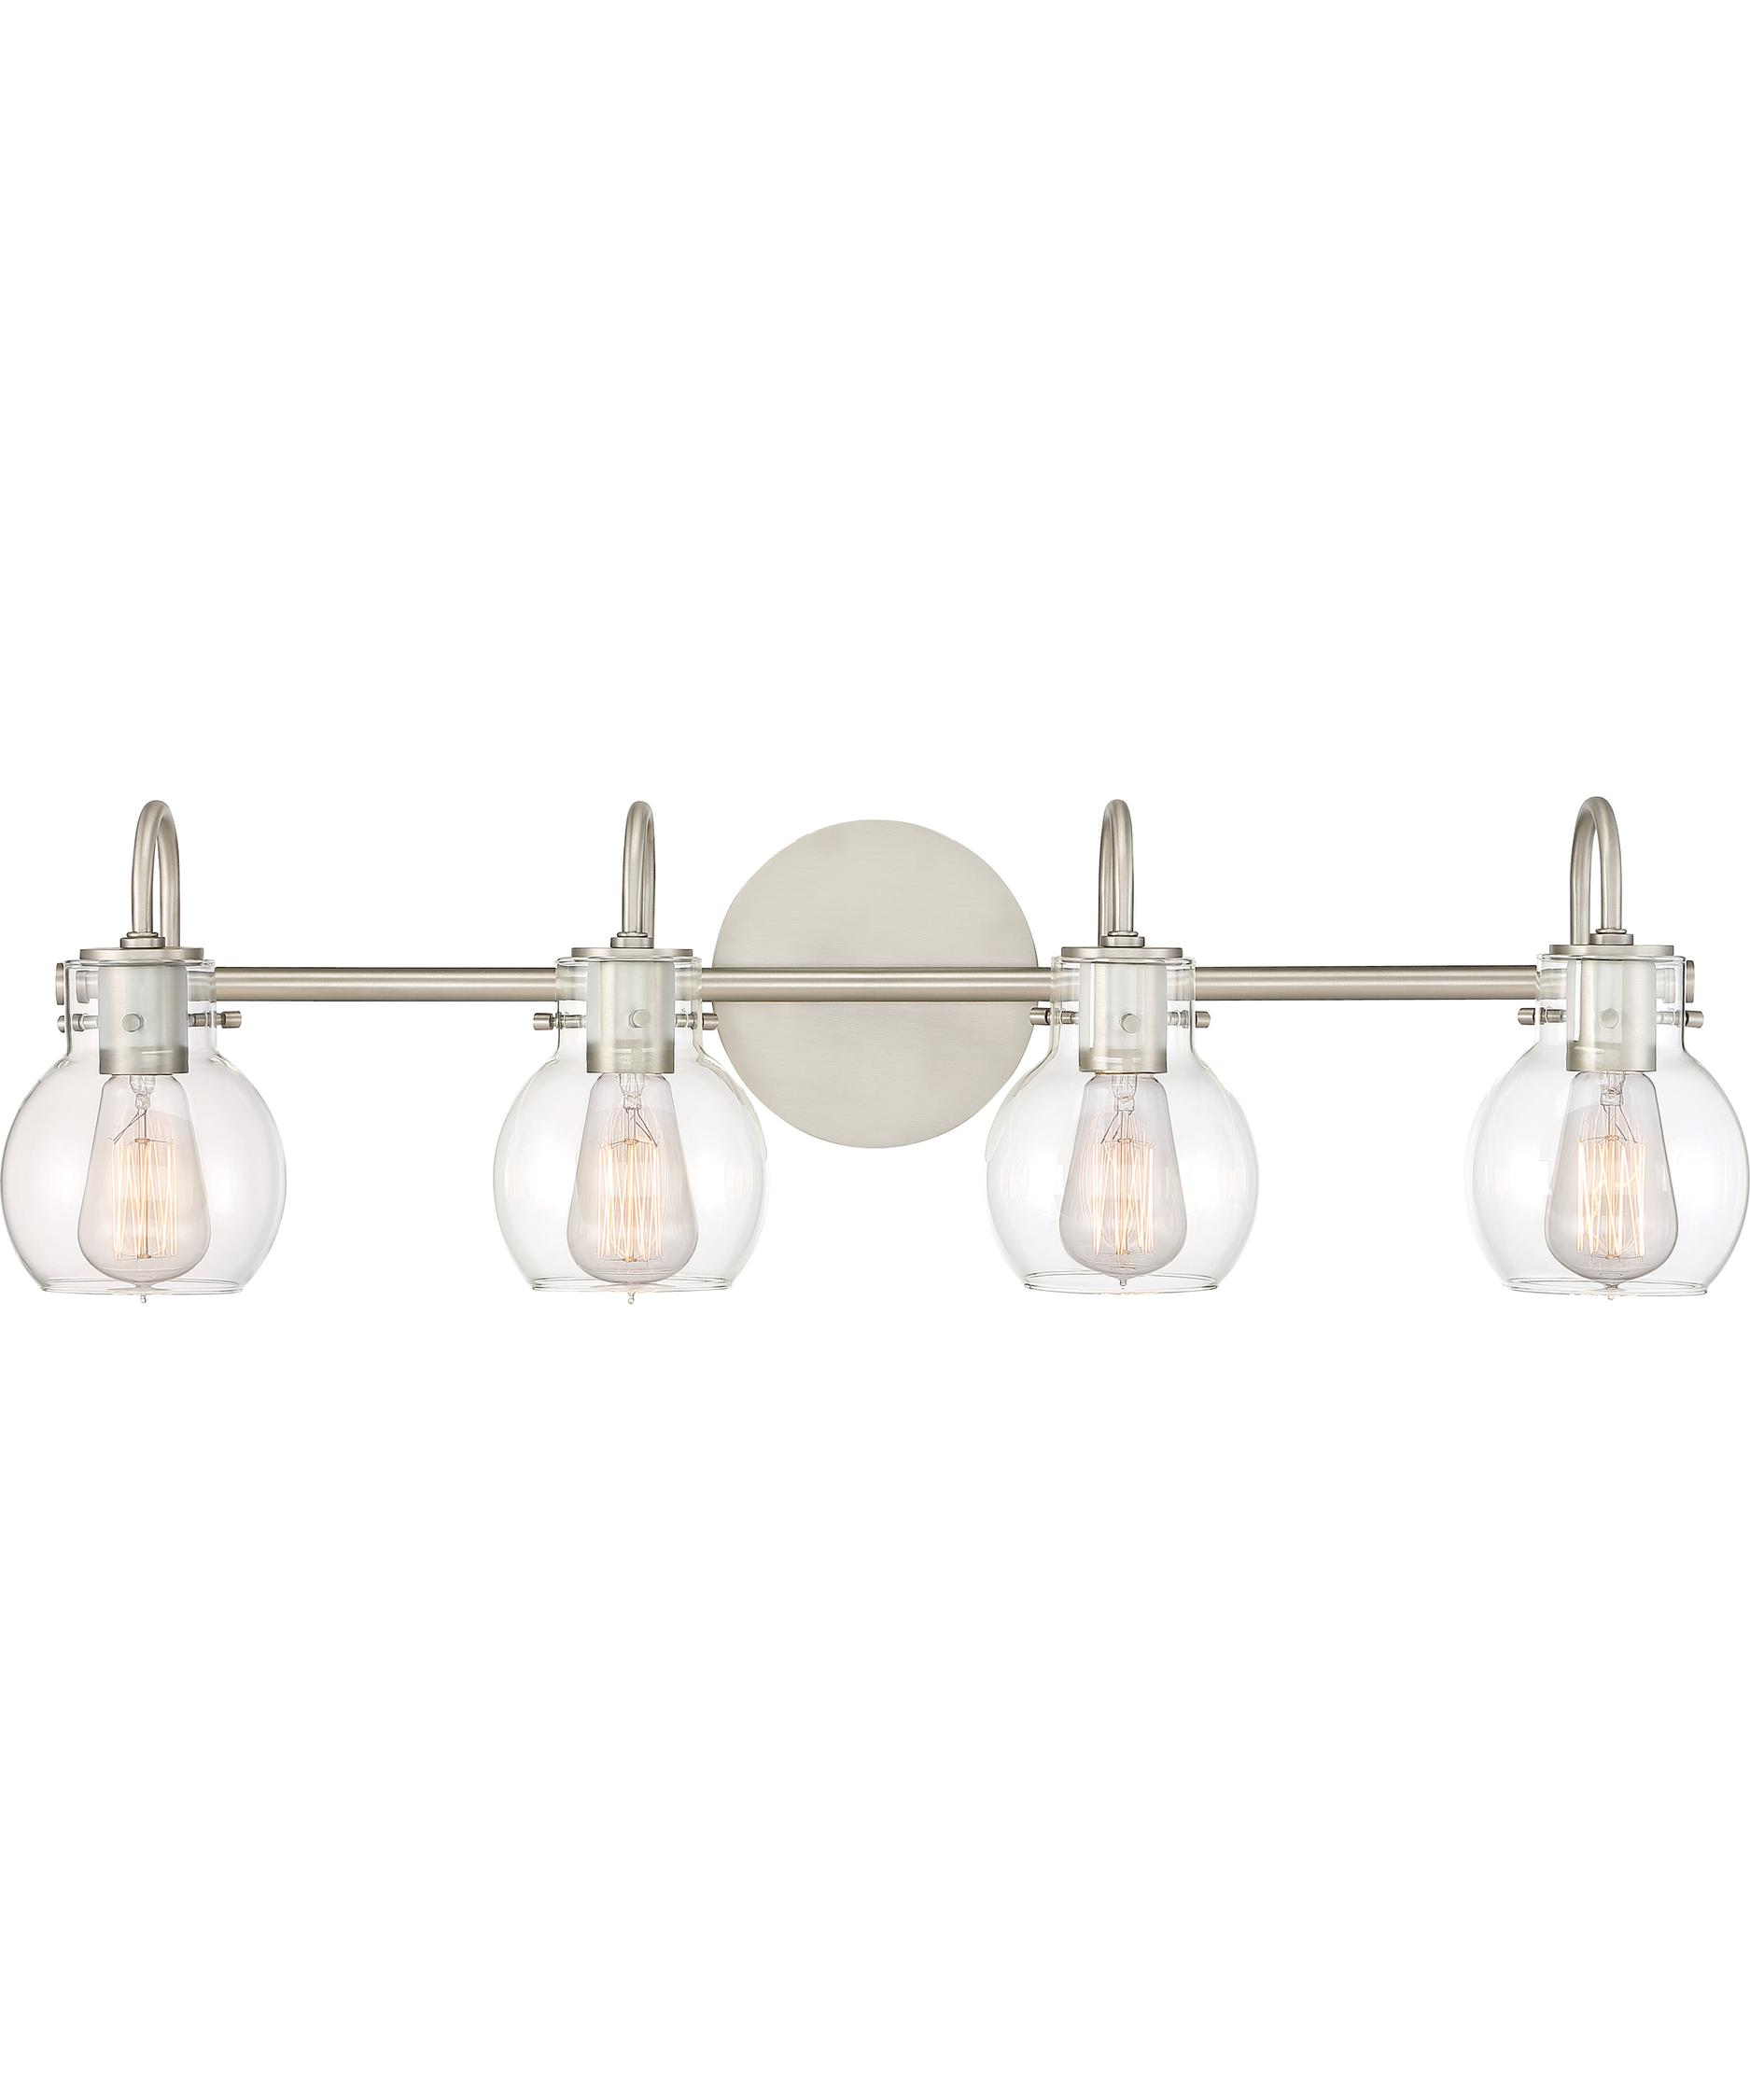 Quoizel Bathroom Light Fixtures quoizel anw8604 andrews 31 inch wide bath vanity light | capitol